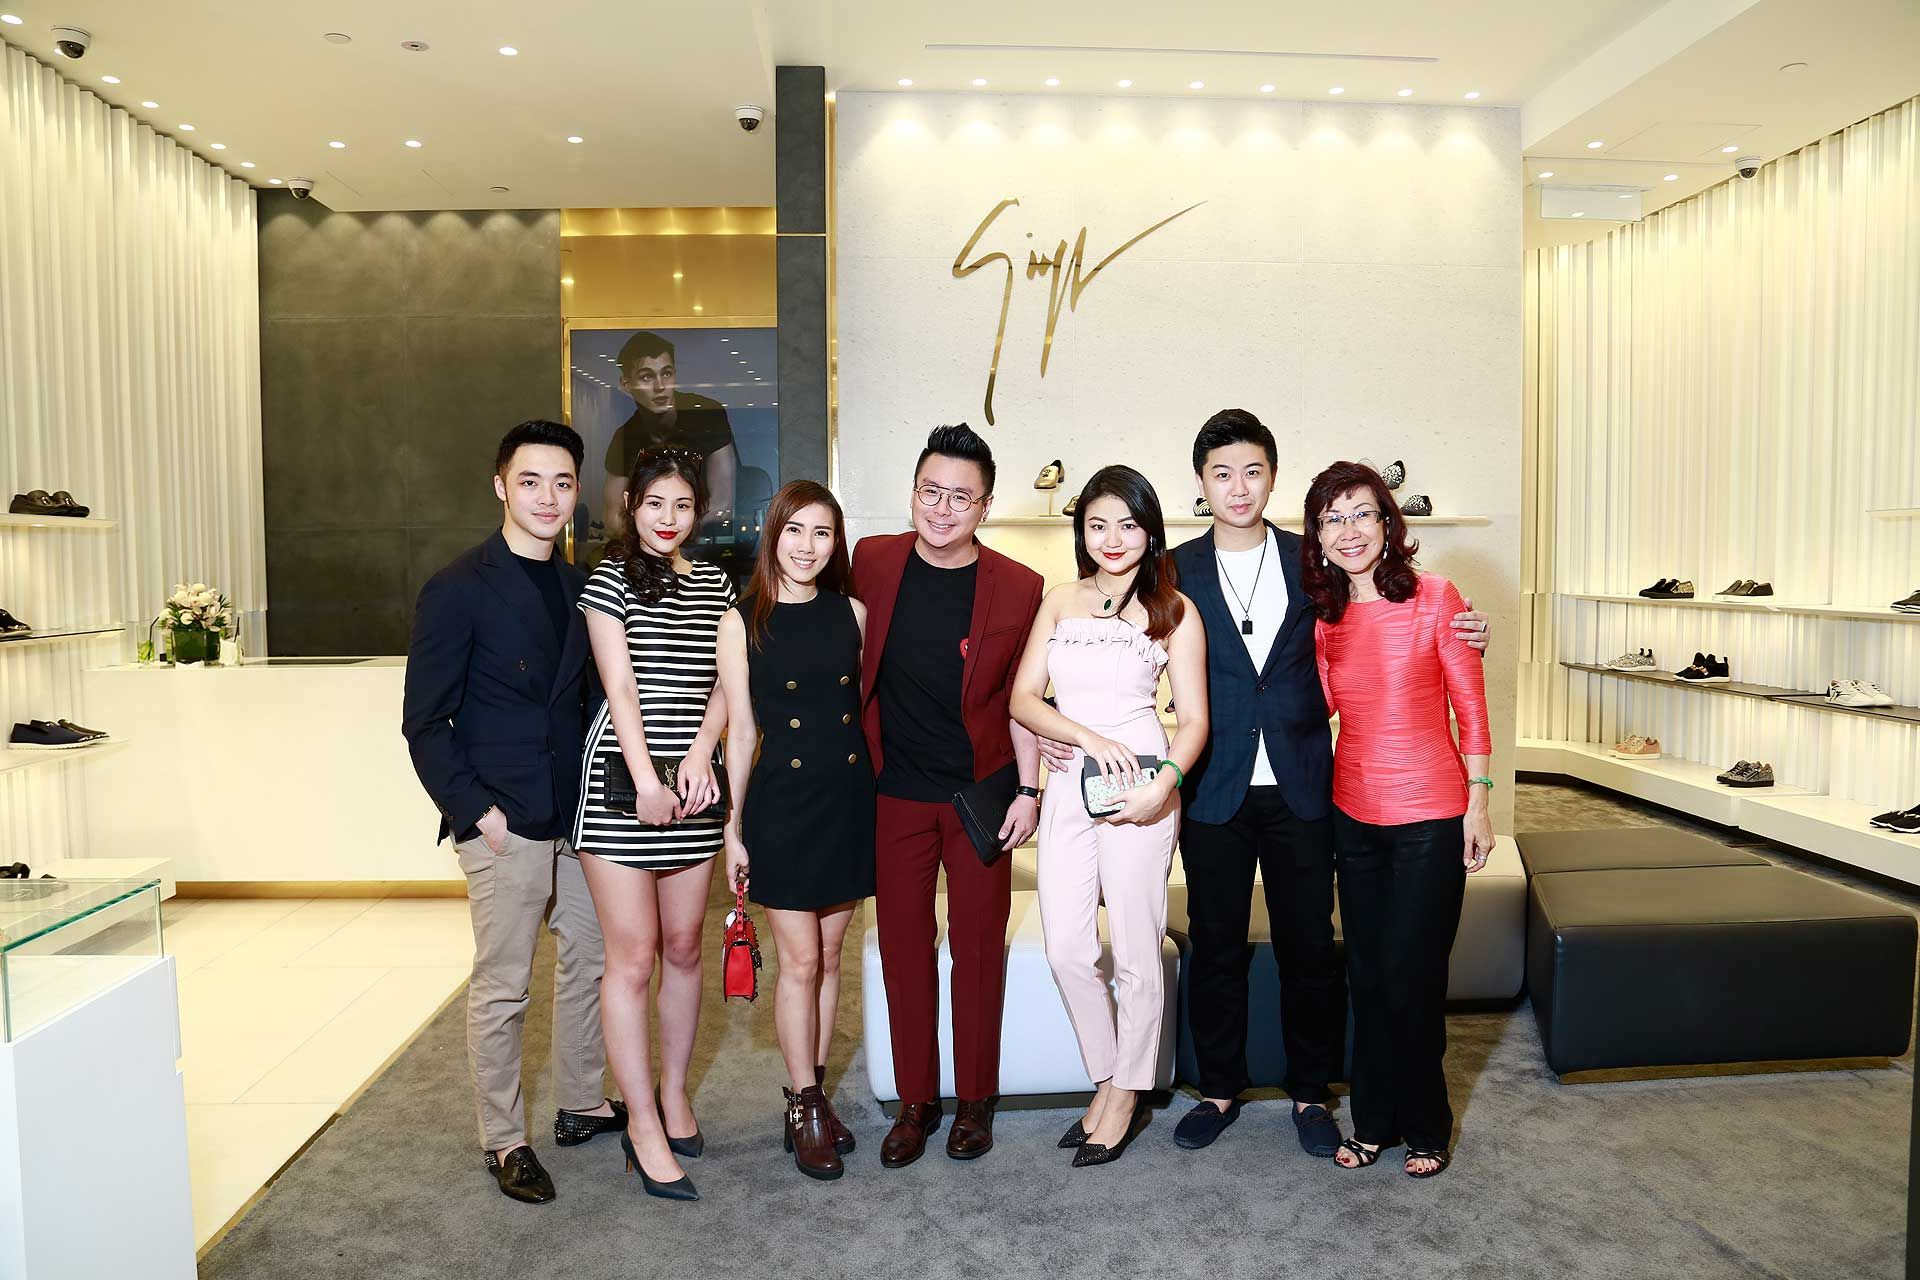 Alson Goh, Tiffany Foo, Carew Tiew, Alex Lee, Denise Chiew, William Sin and Florence Fang